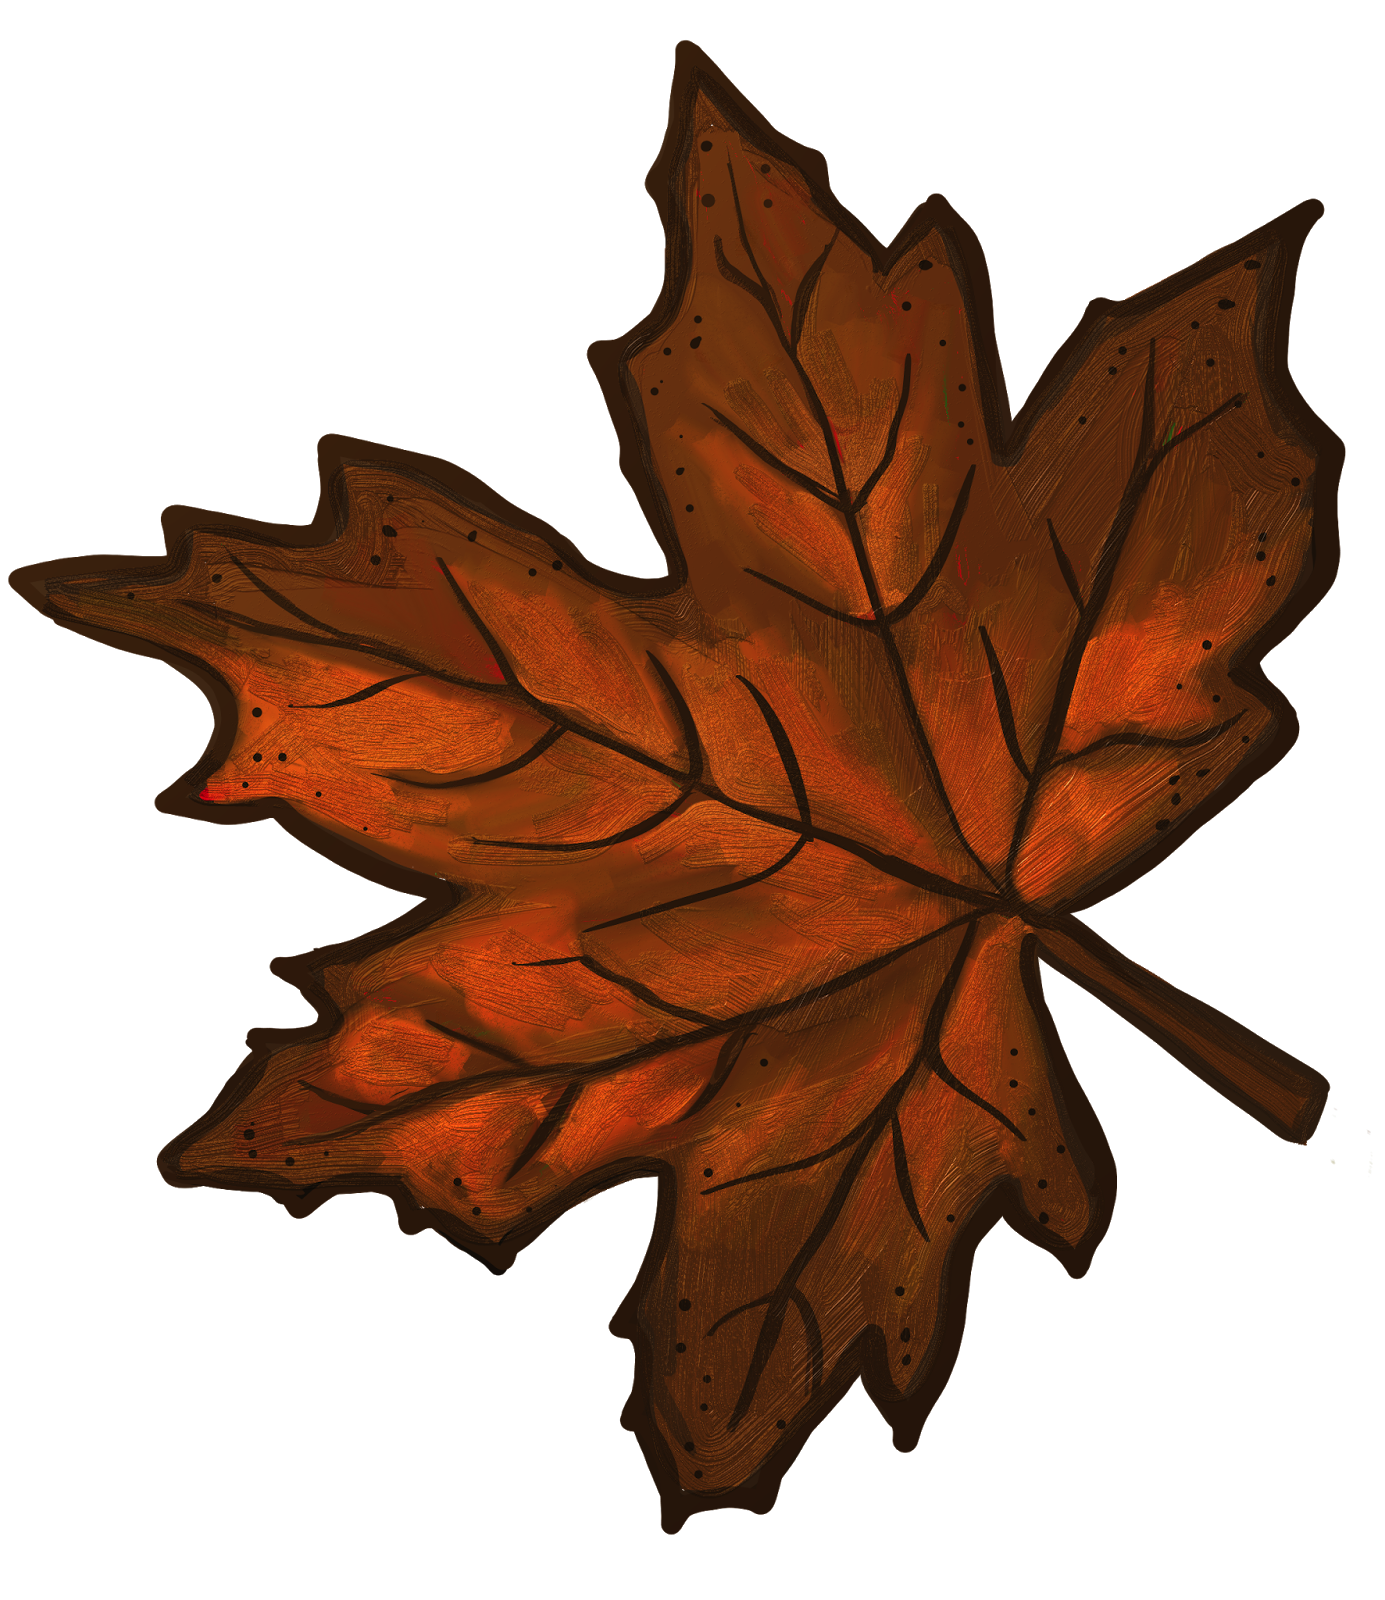 Orange And Red Painted Leaves